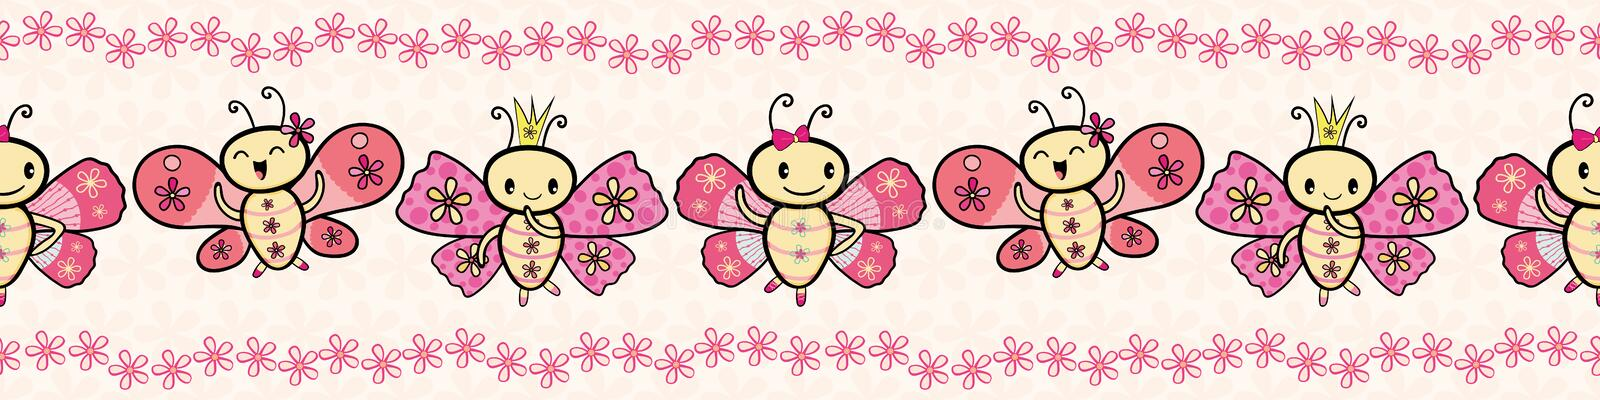 Cute pink hand drawn Kawaii style dancing butterflies border with floral edging. Seamless vector pattern on cream flower vector illustration